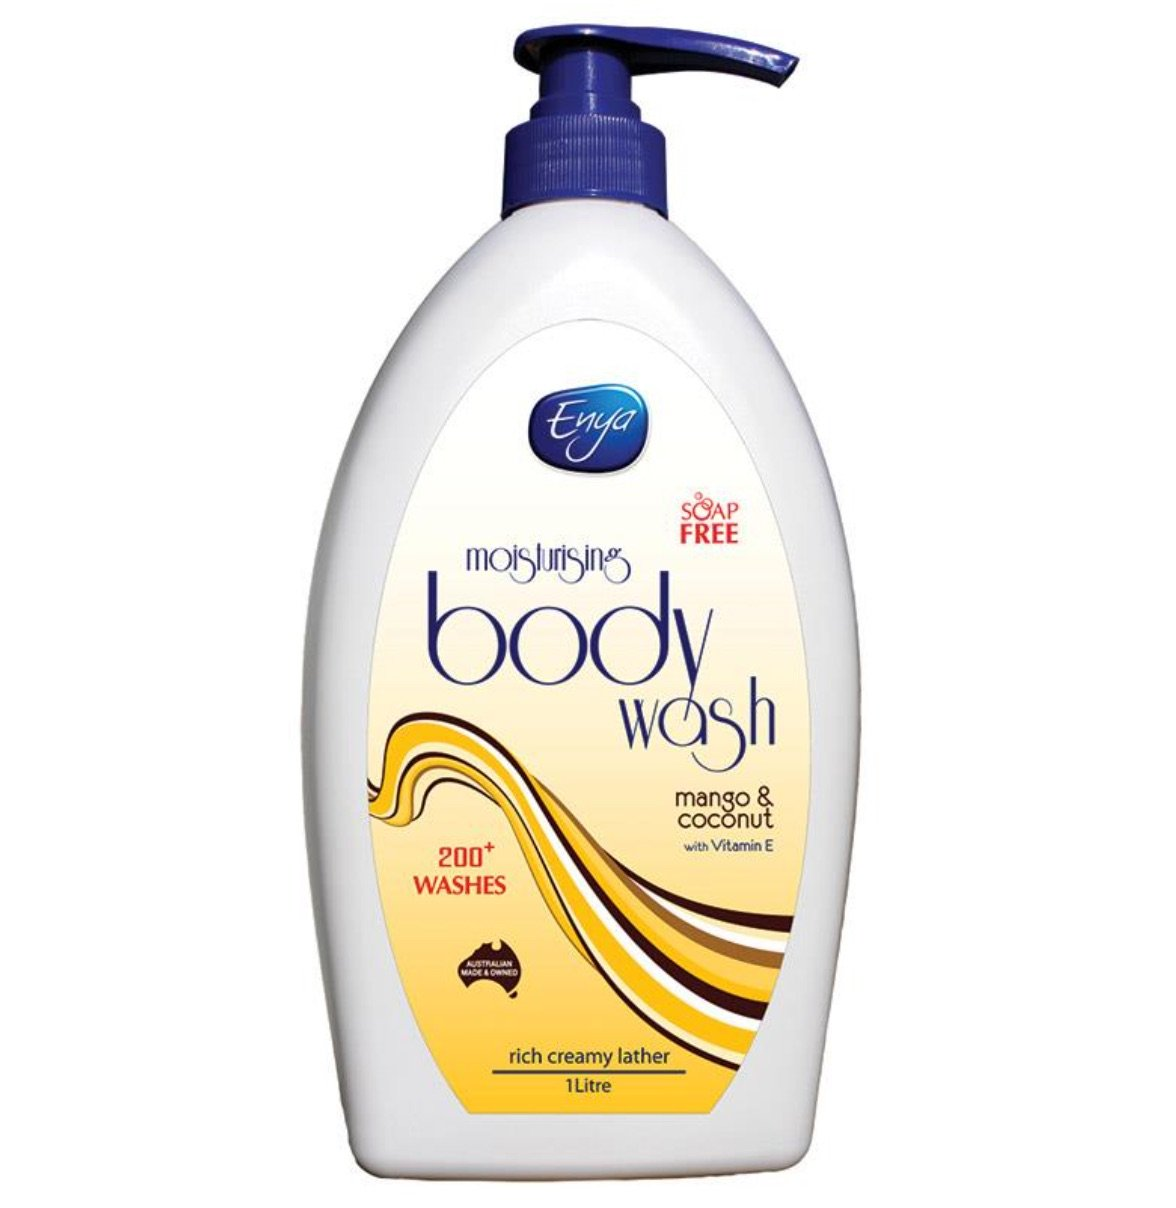 ENYA BODY WASH MANGO & COCONUT 1L, EACH